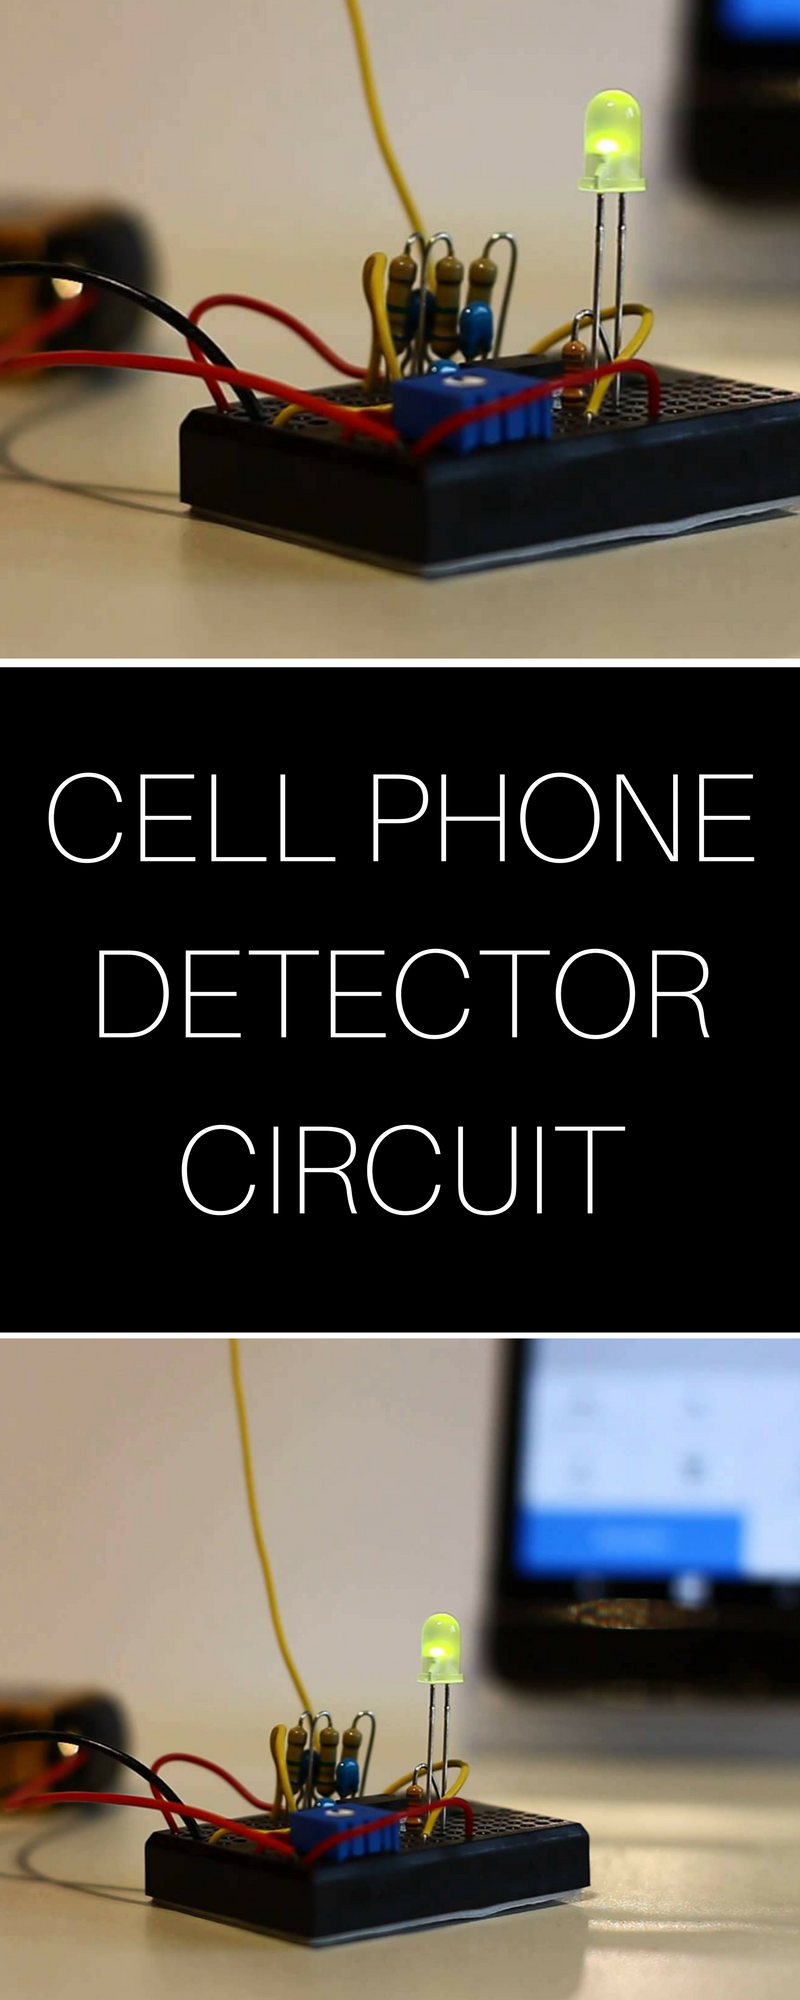 Cell Phone Detector Circuit Electrical Engineering Pinterest Electronic Drawing Software Circuits Pic